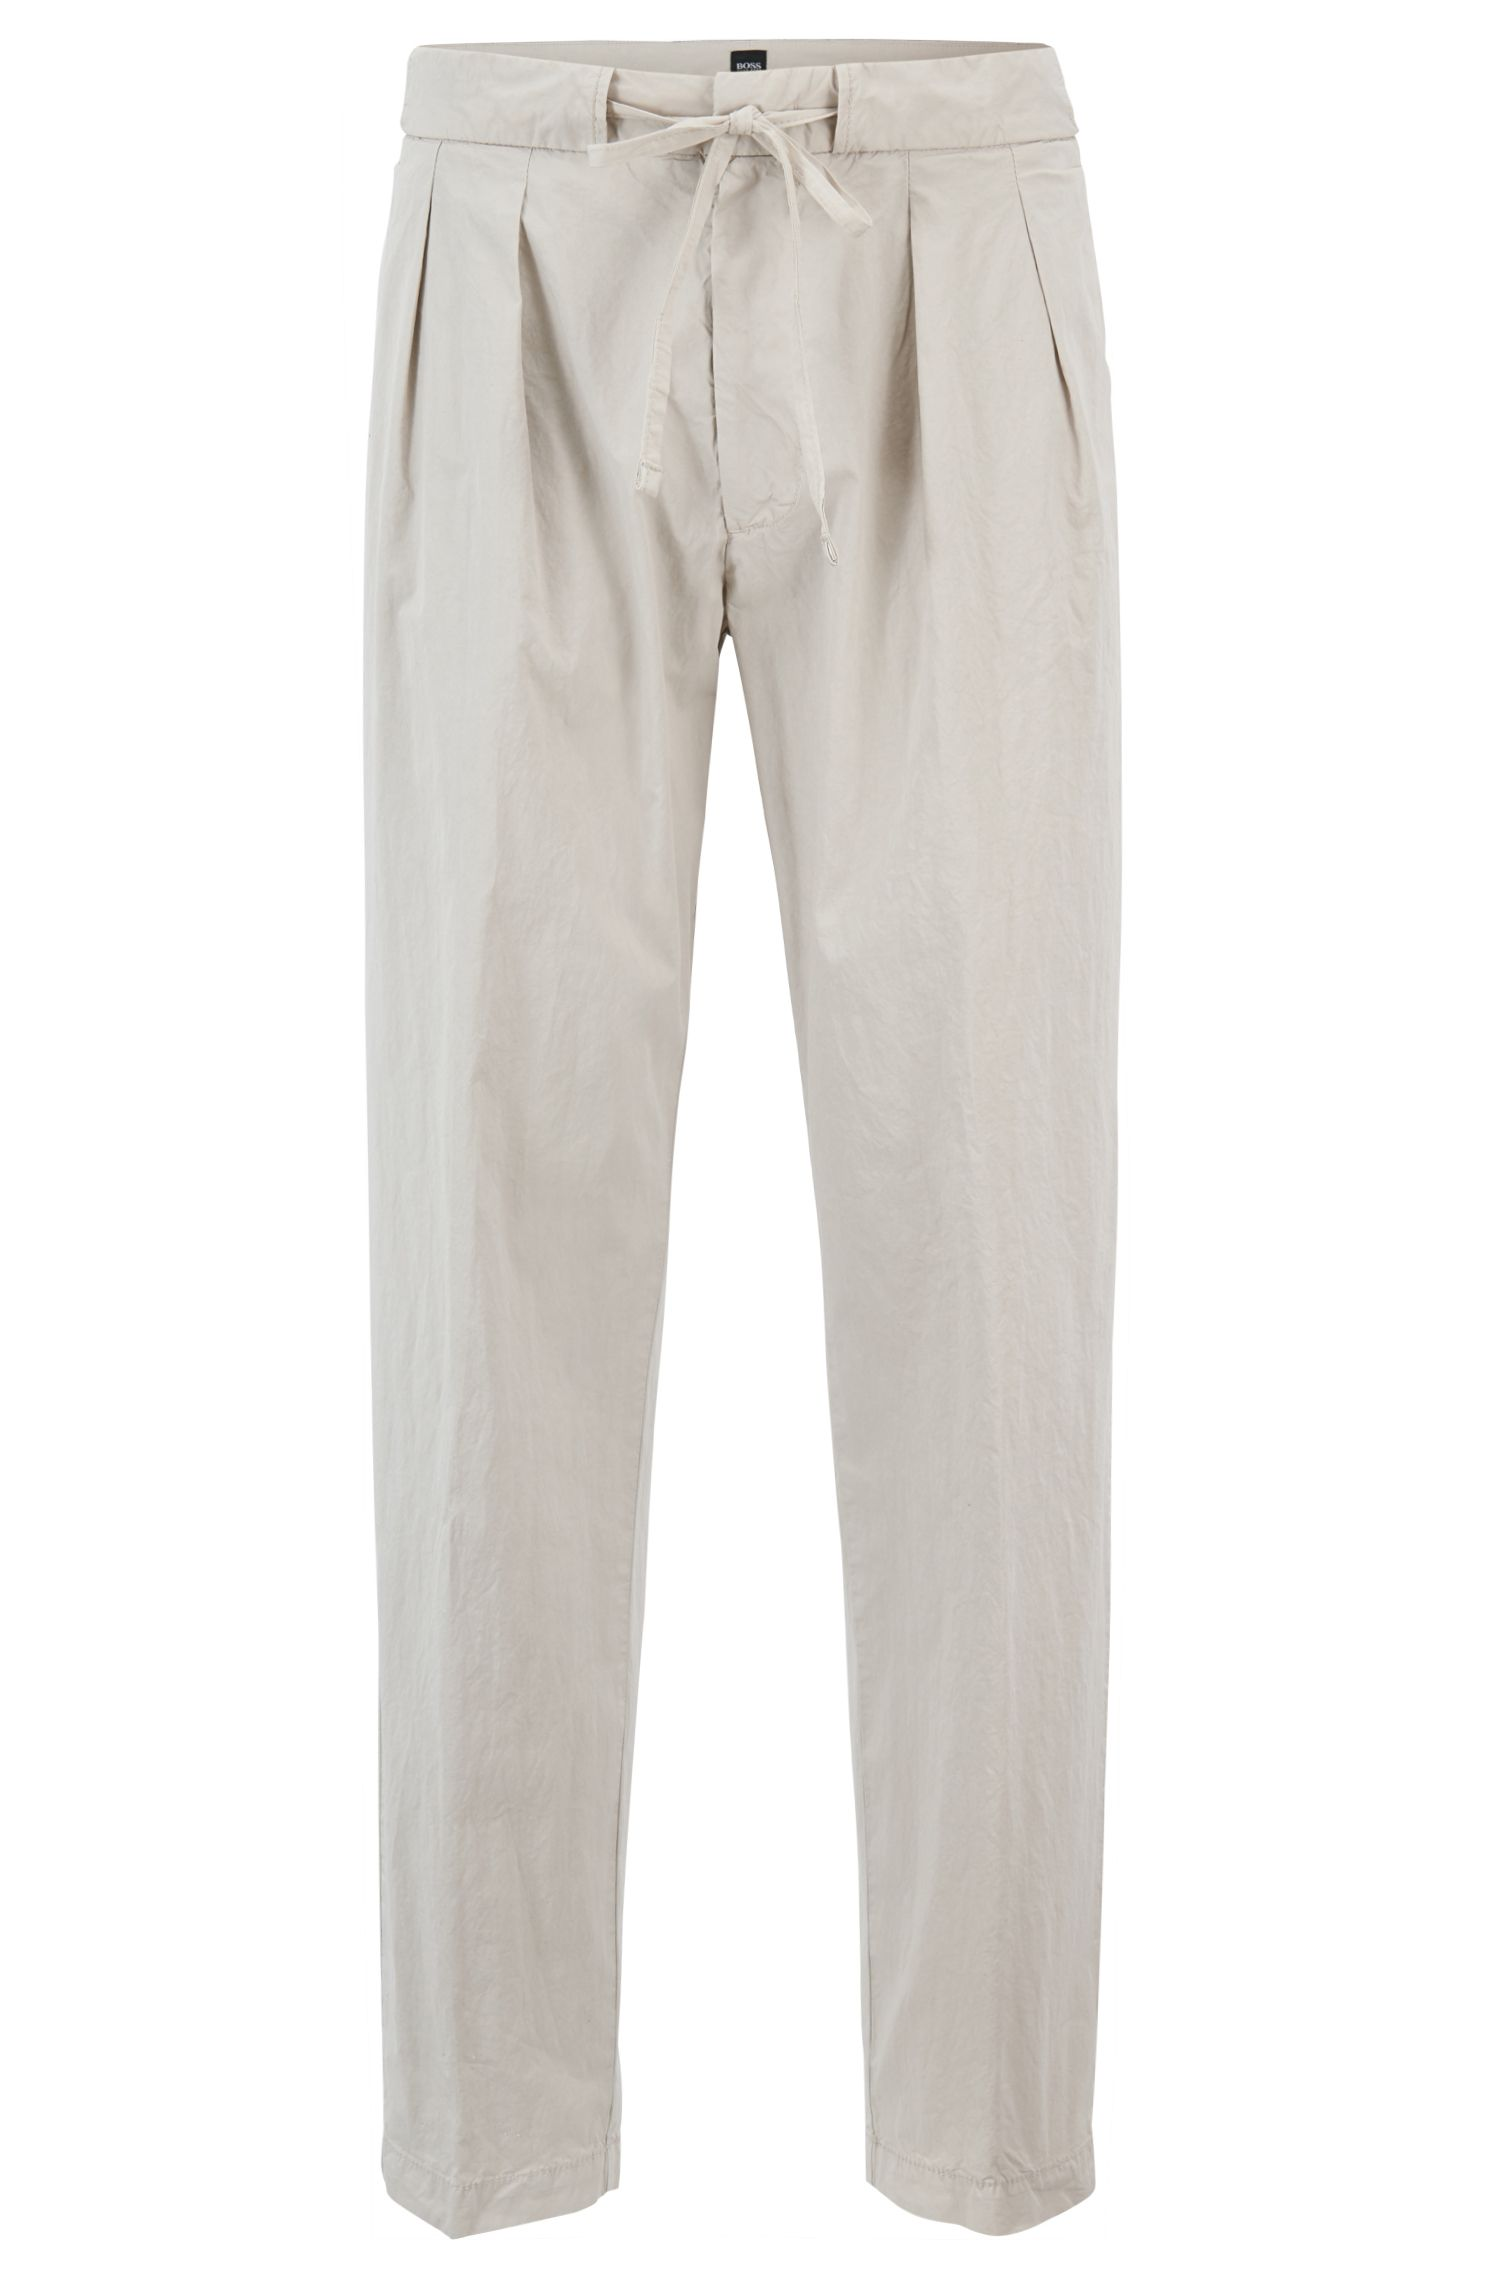 Relaxed-fit pleated chinos in Italian stretch cotton